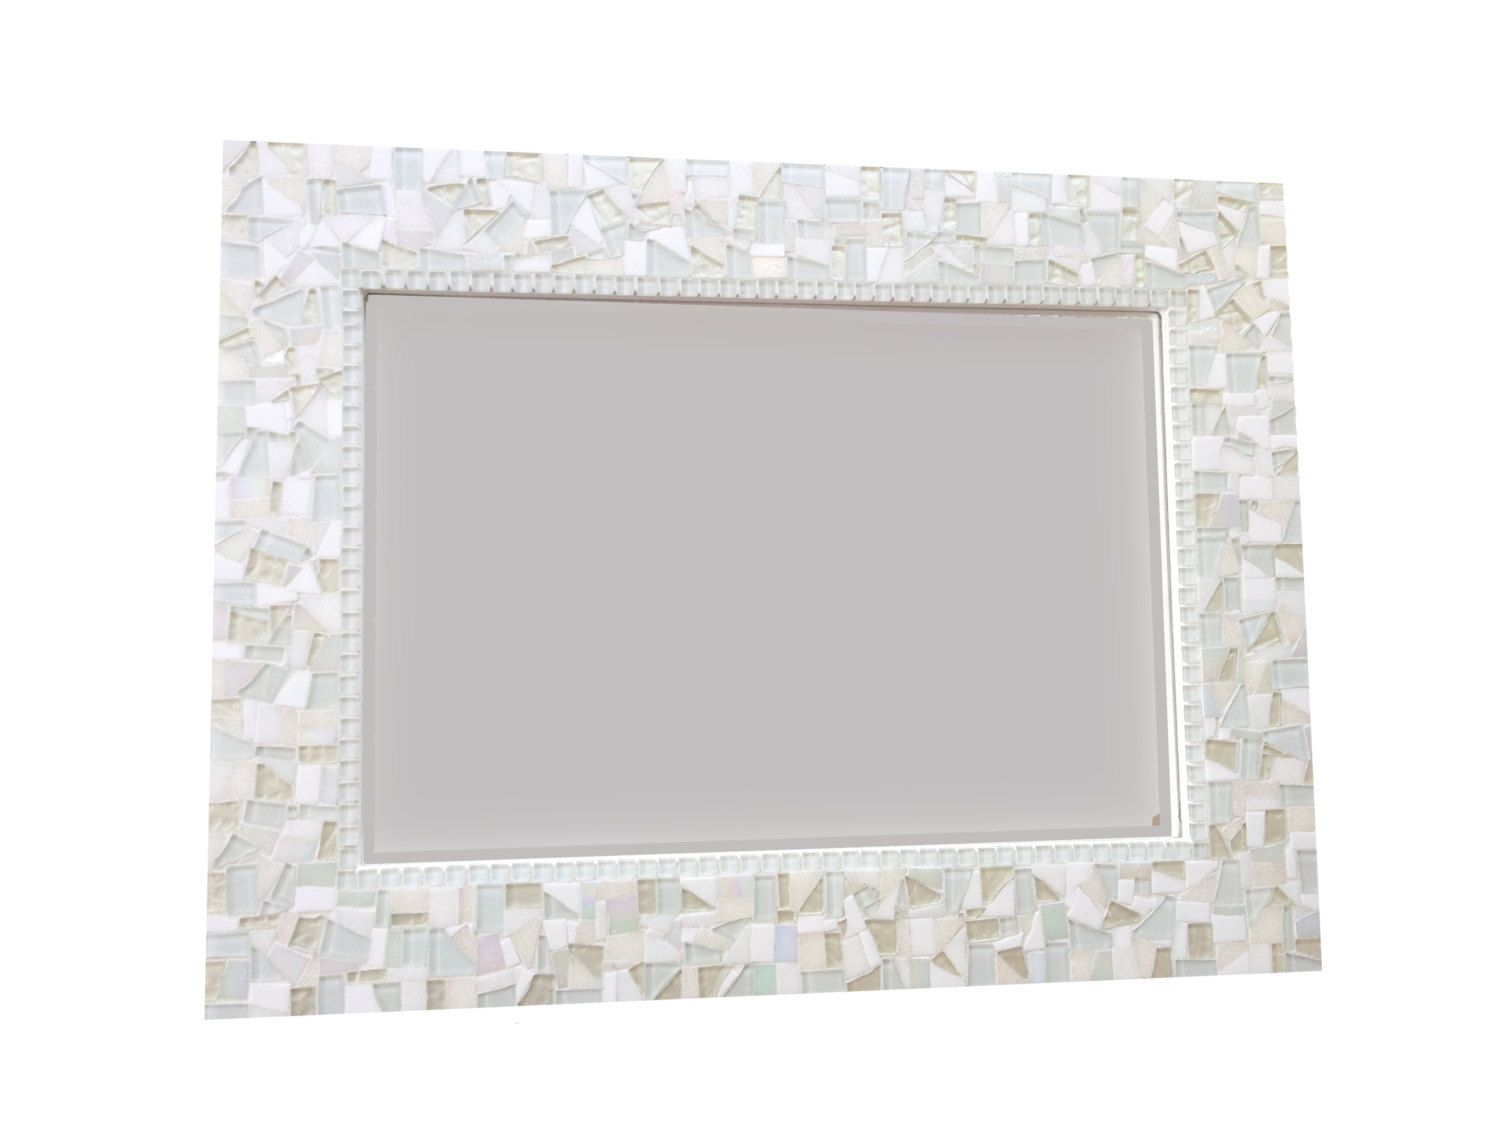 All white wall mirror large mosaic mirror by greenstreetmosaics this neutral all white mosaic wall mirror will no doubt make a stunning addition to any room in your home bathroom bedroom hallway living amipublicfo Image collections